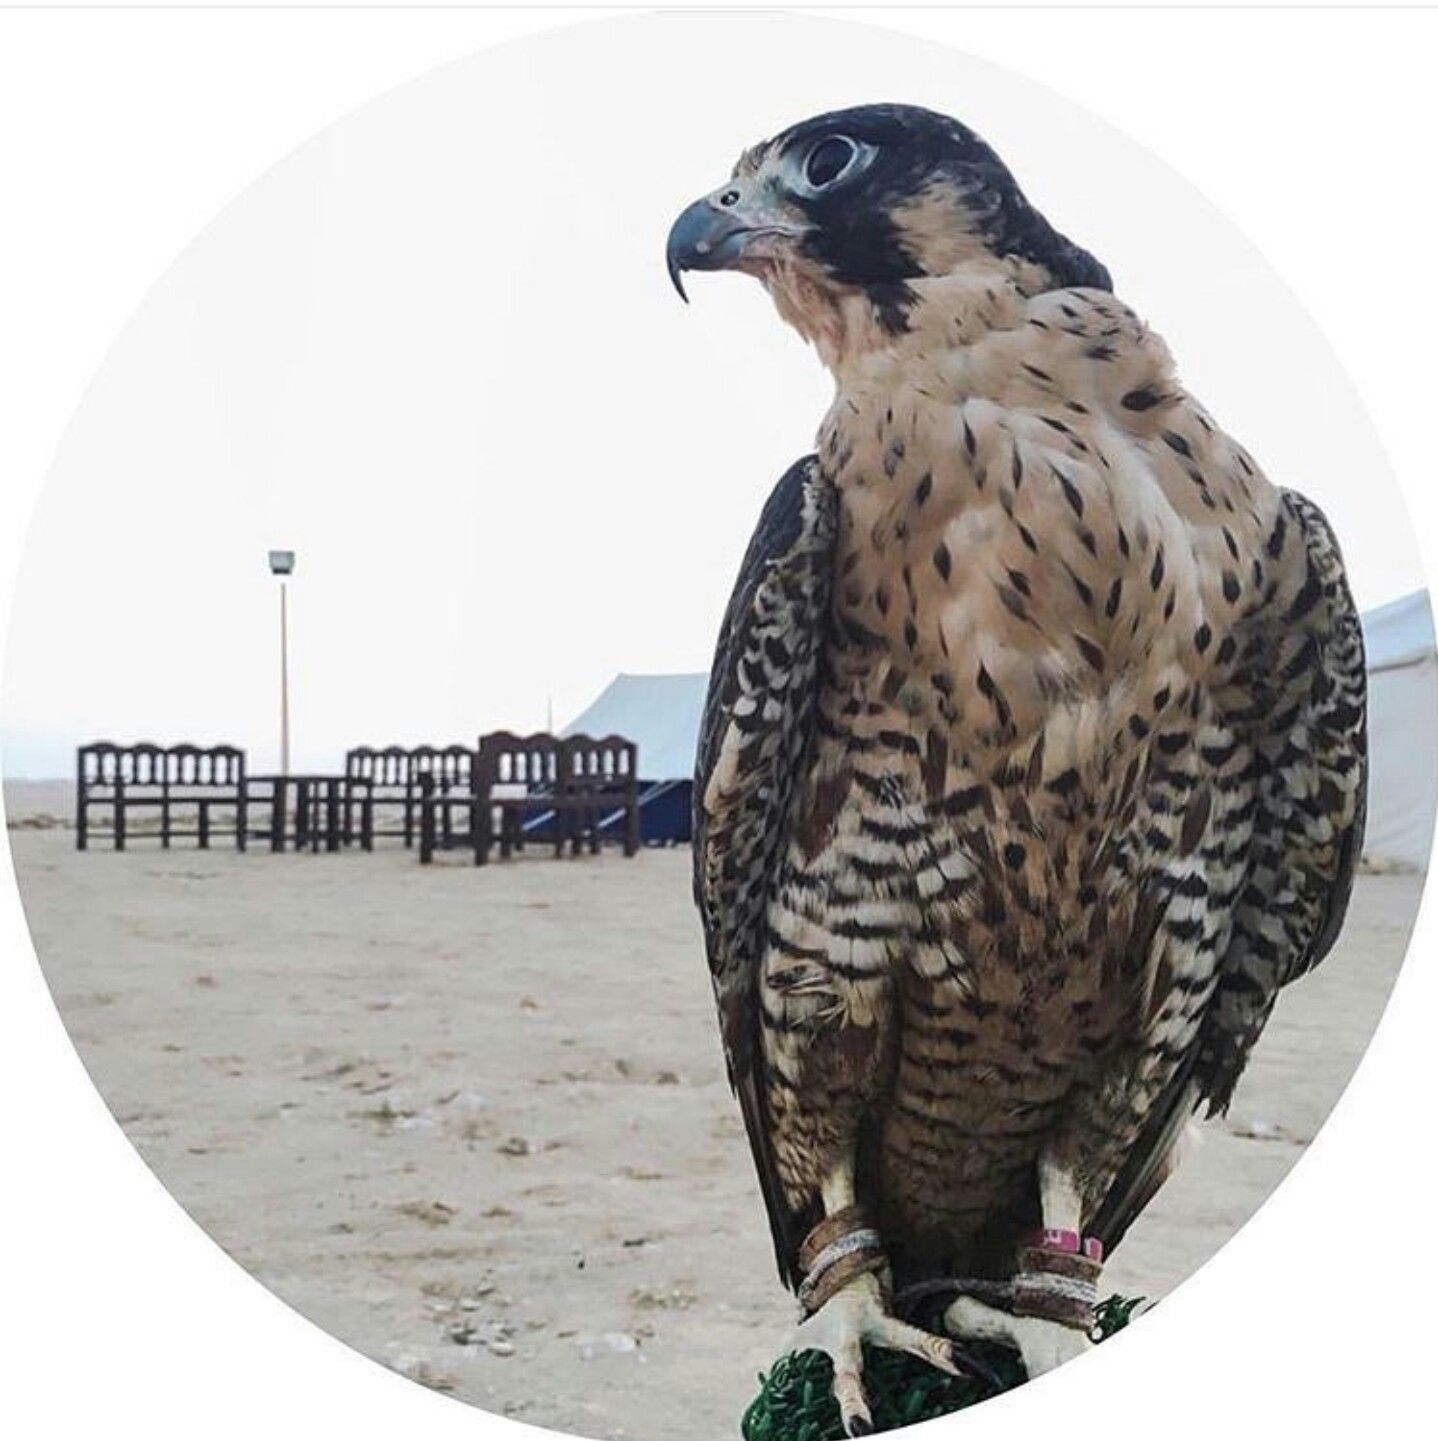 Pin By The Chaldaeans On Royal Falconry The Art Of Hunting Profile Picture Pictures Instagram Story